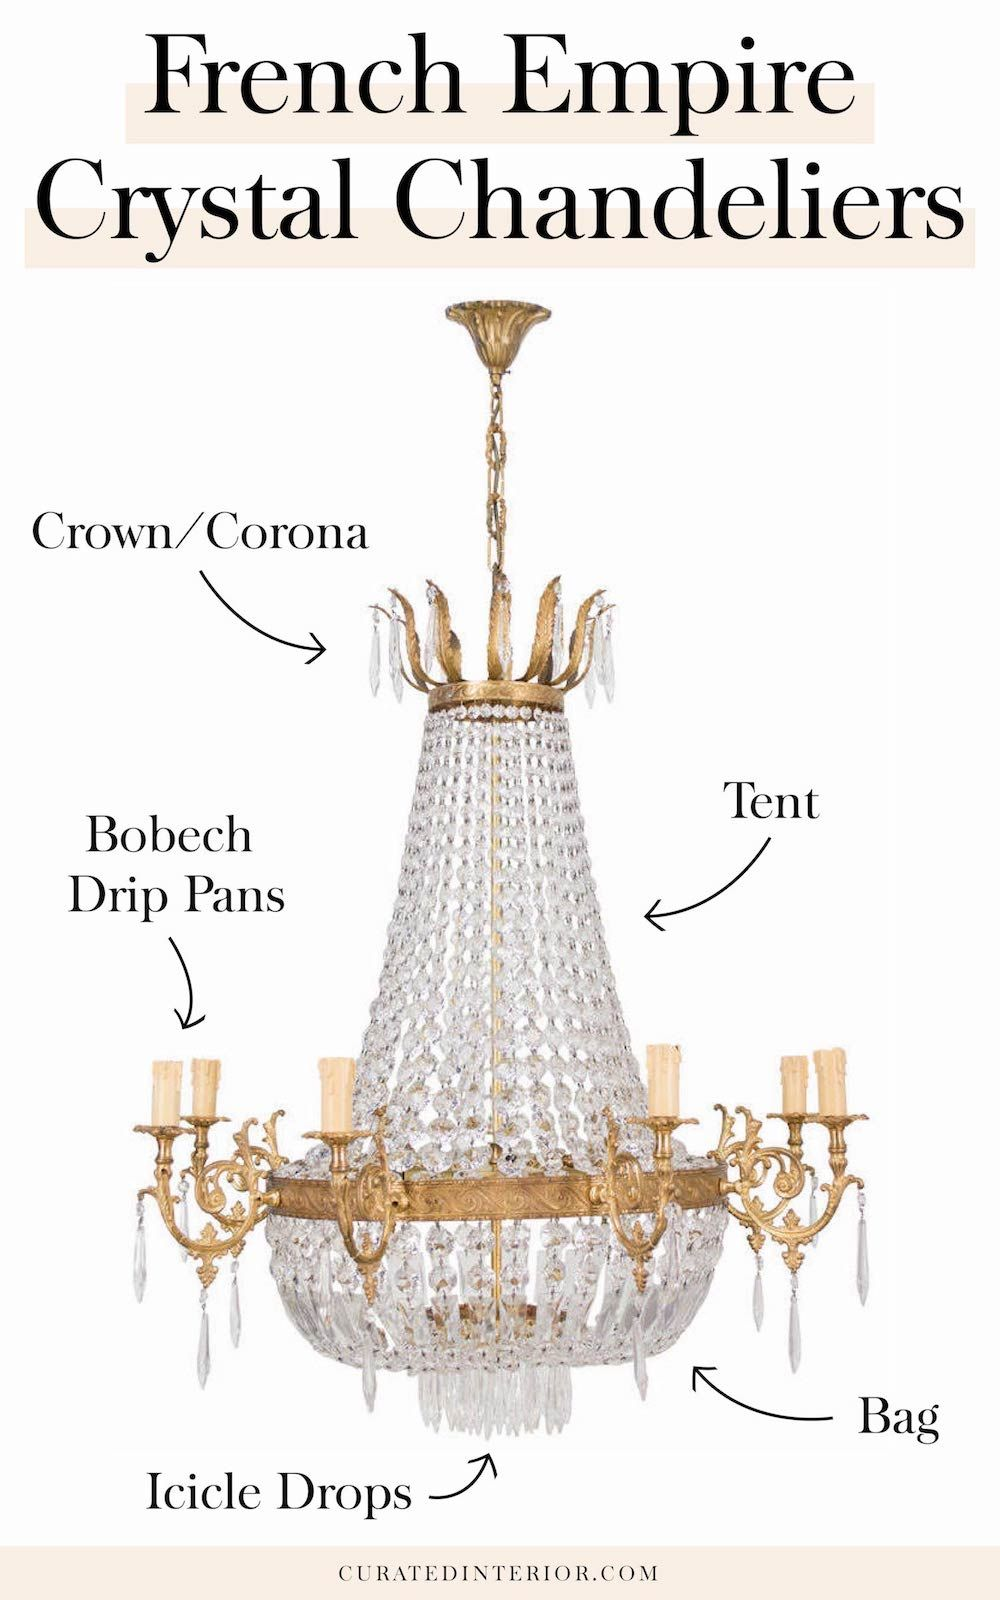 12 Elegant Crystal Chandeliers & Where to Hang Them in Your Home